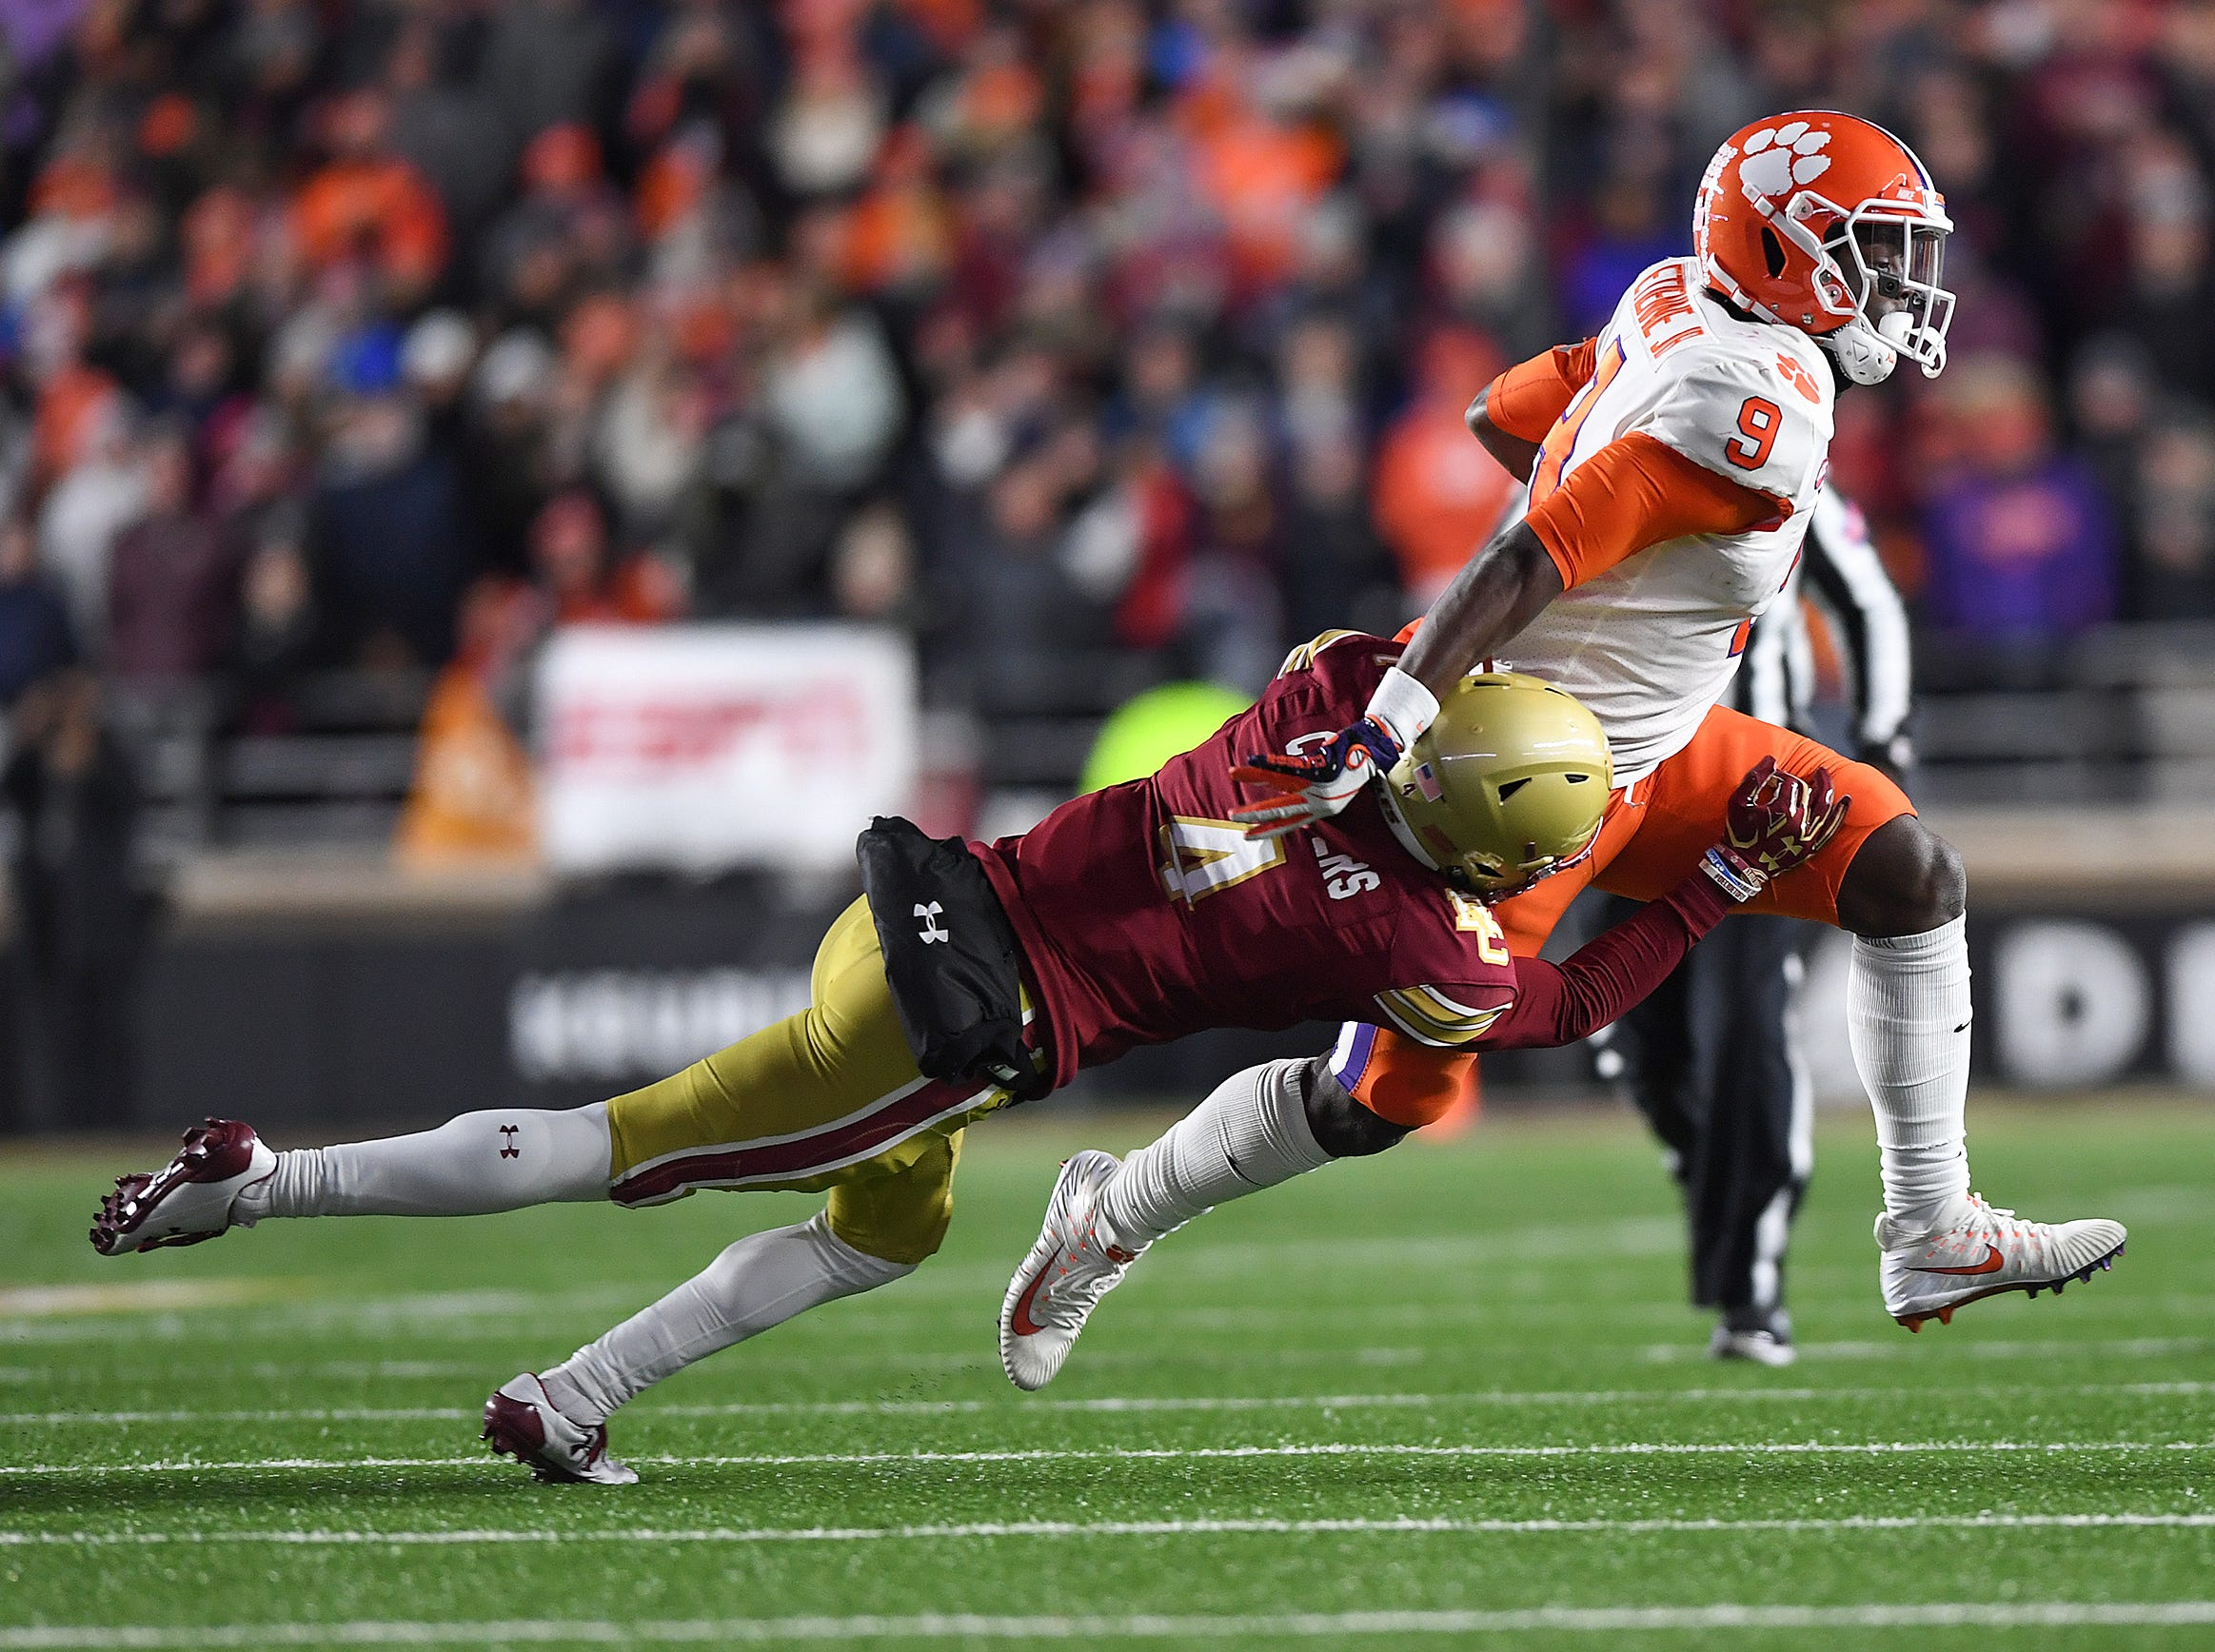 Boston College quarterback EJ Perry (4) tries to bring down Clemson running back Travis Etienne (9) during the 2nd quarter at Boston College's Alumni Stadium in Chestnut Hill, MA. Saturday, November 10, 2018.